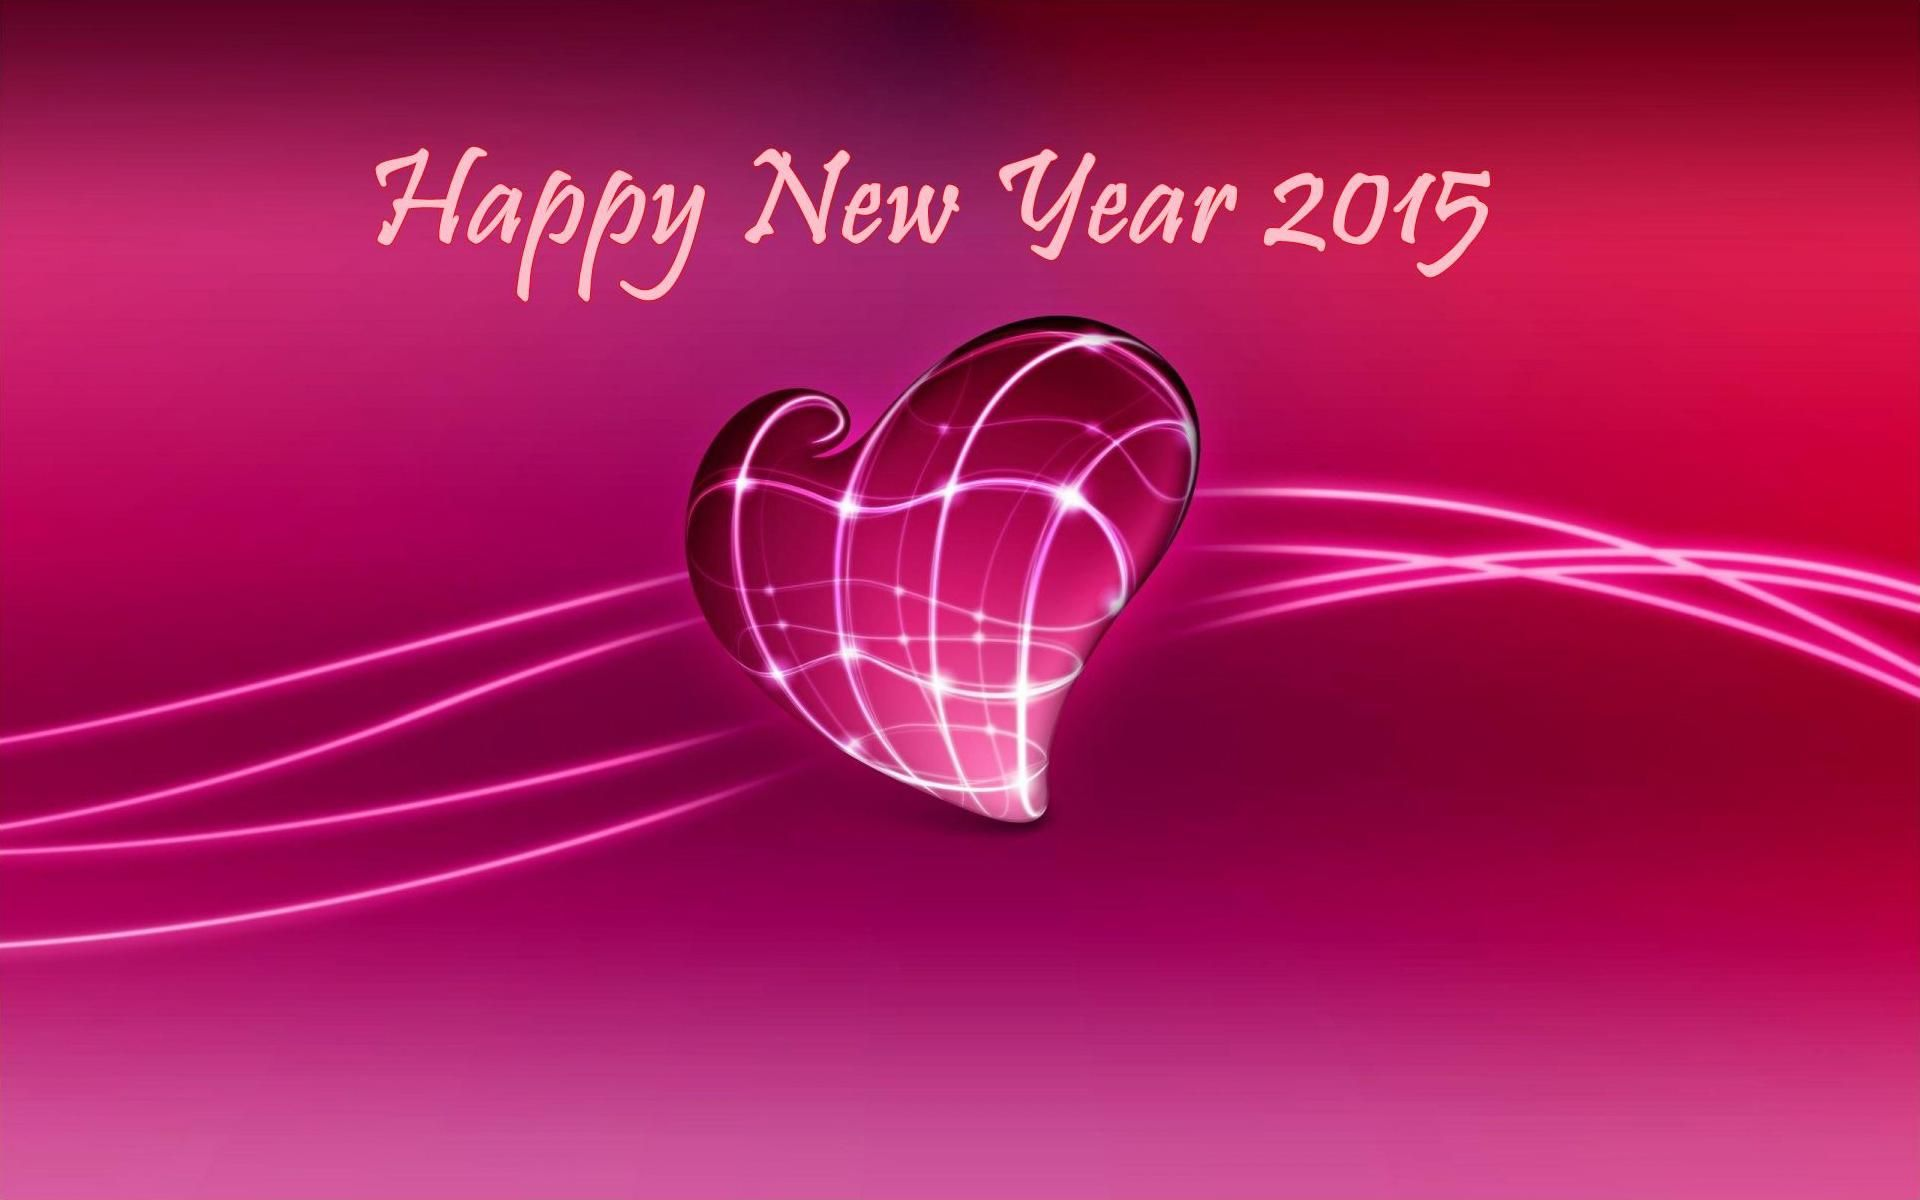 Nice Best High Definition 3d Wallpapers For Desktop Hd Love Image With Message New Year